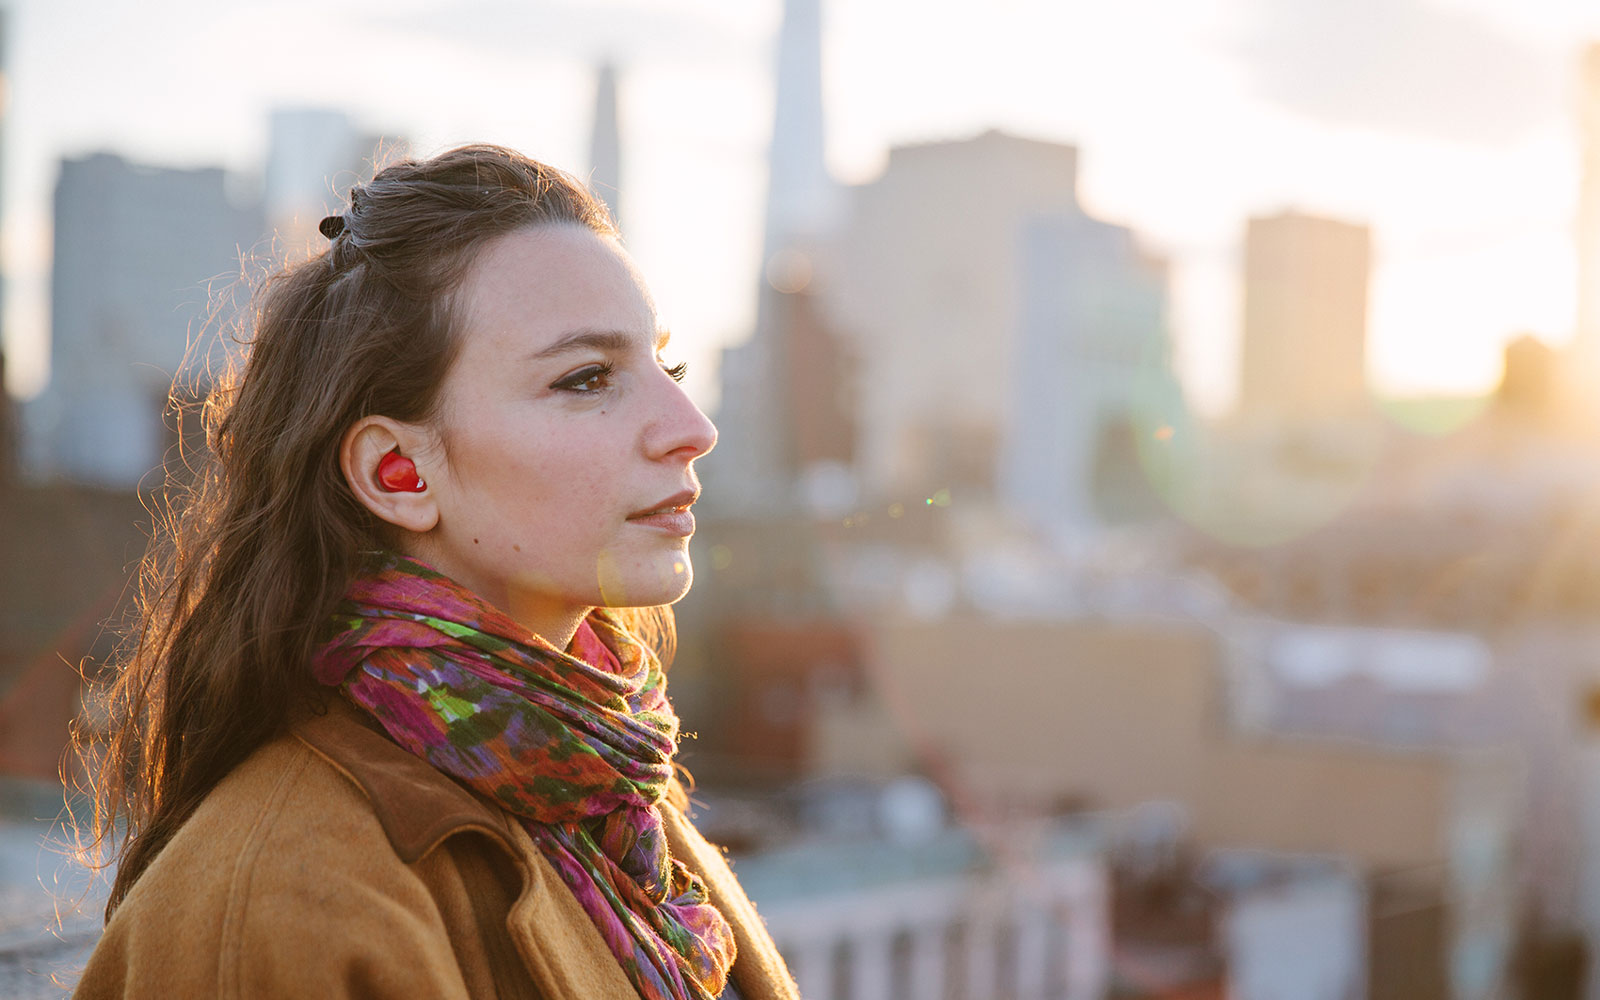 Could This Translating Earpiece Change the Way We Travel?